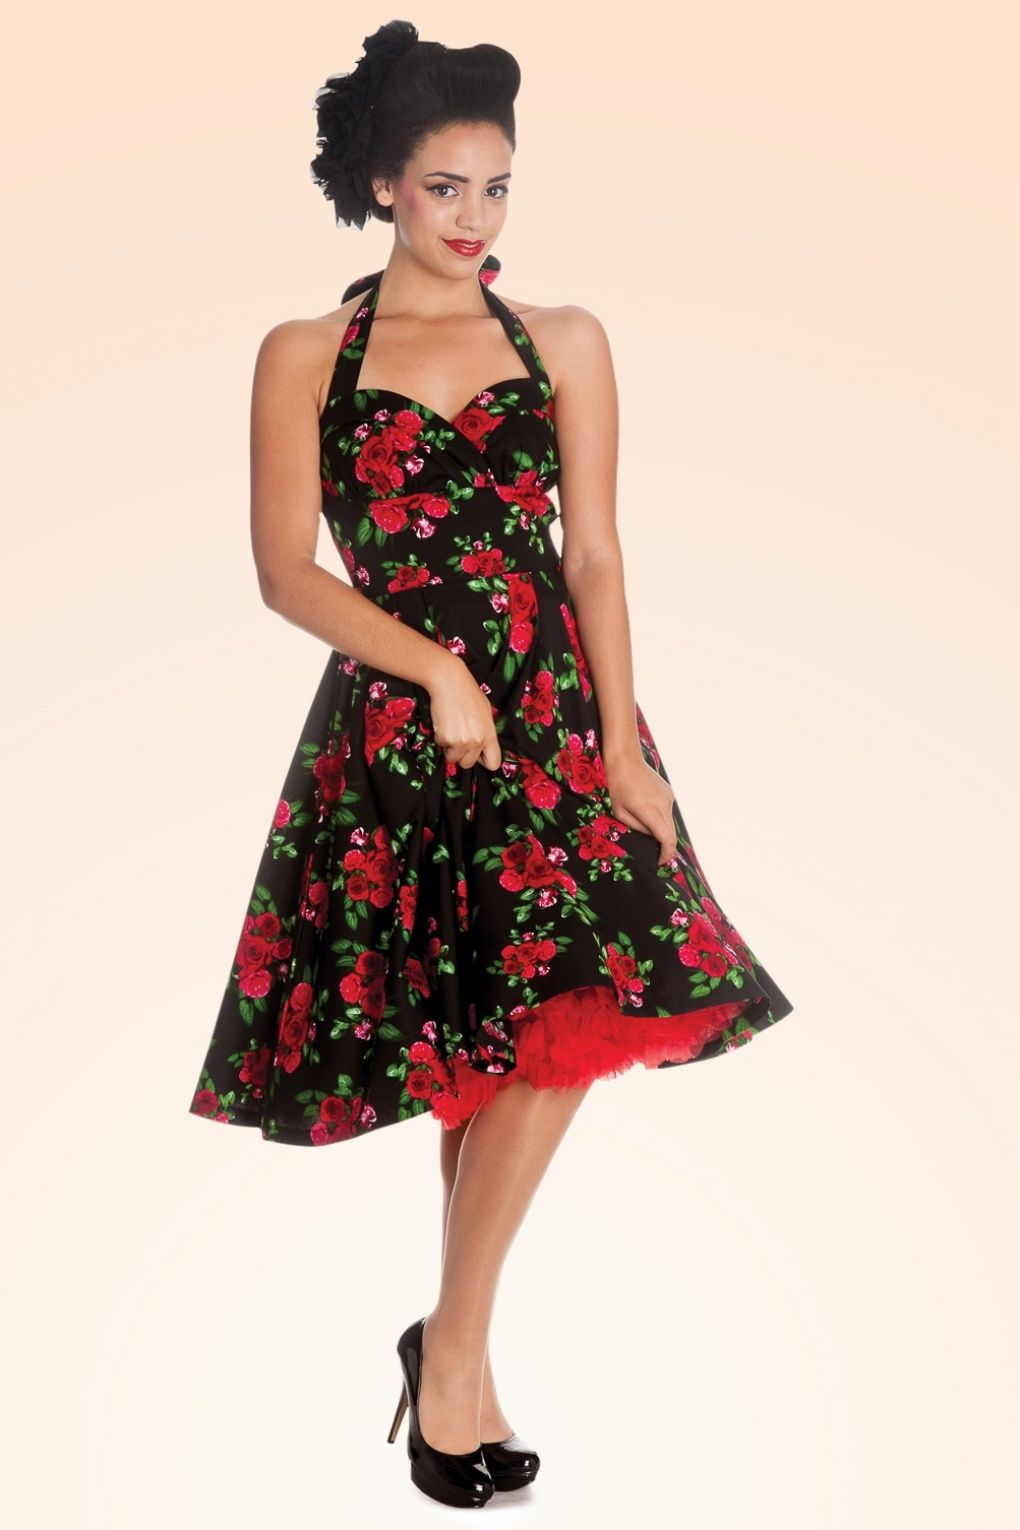 a7c1e7bc5a6f 50s Retro Halter Cannes Roses Dress in Black | petticoat ...